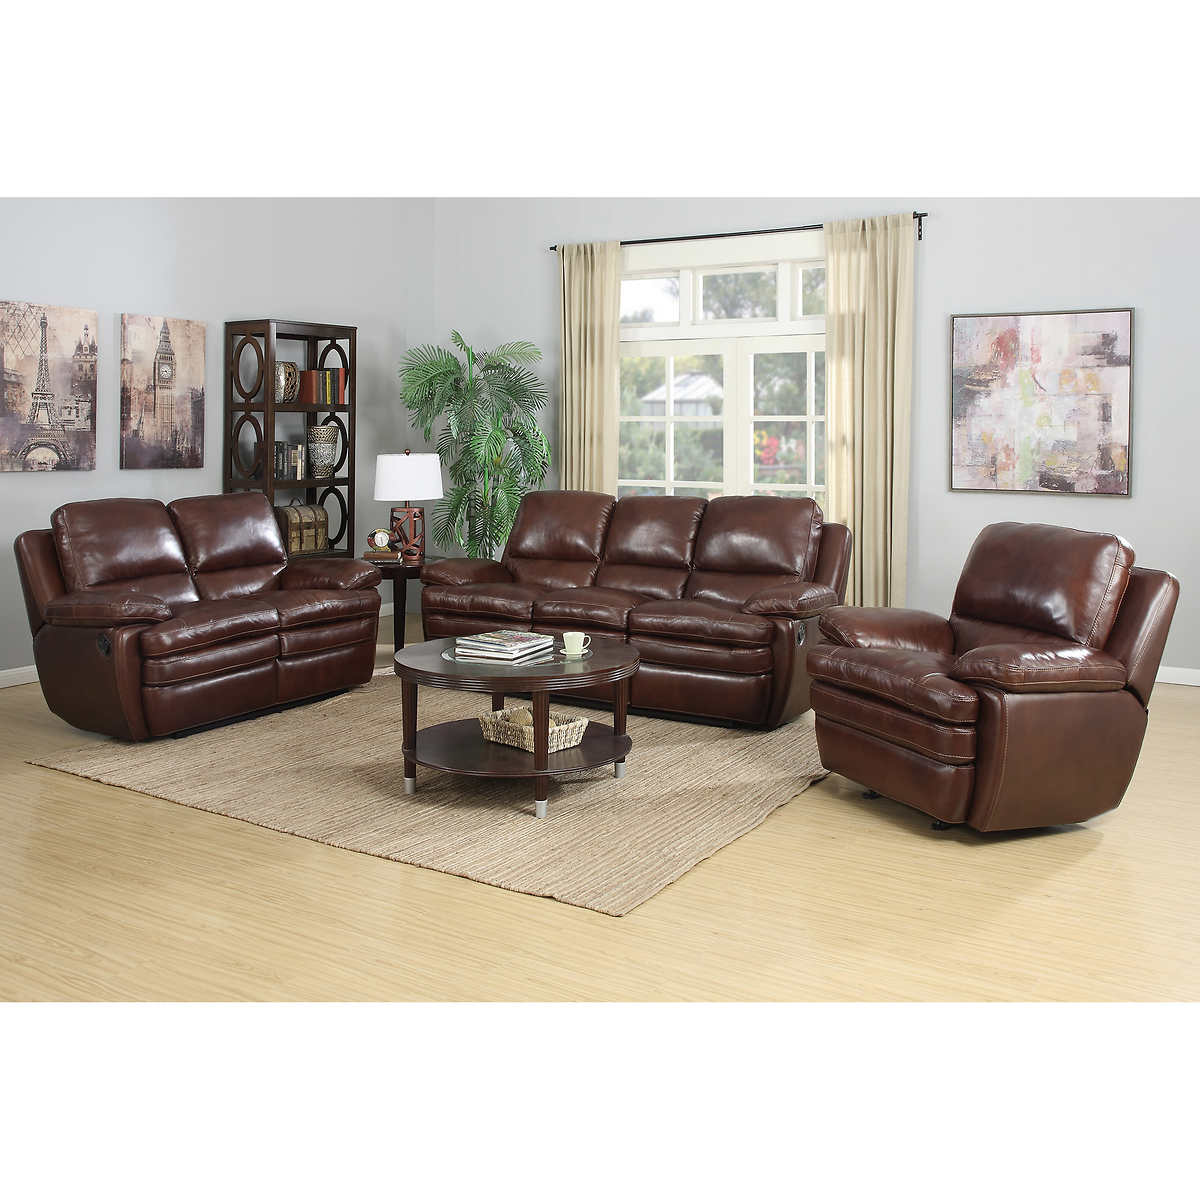 Htl concord leather sofa reviews refil sofa for Htl sectional leather sofa